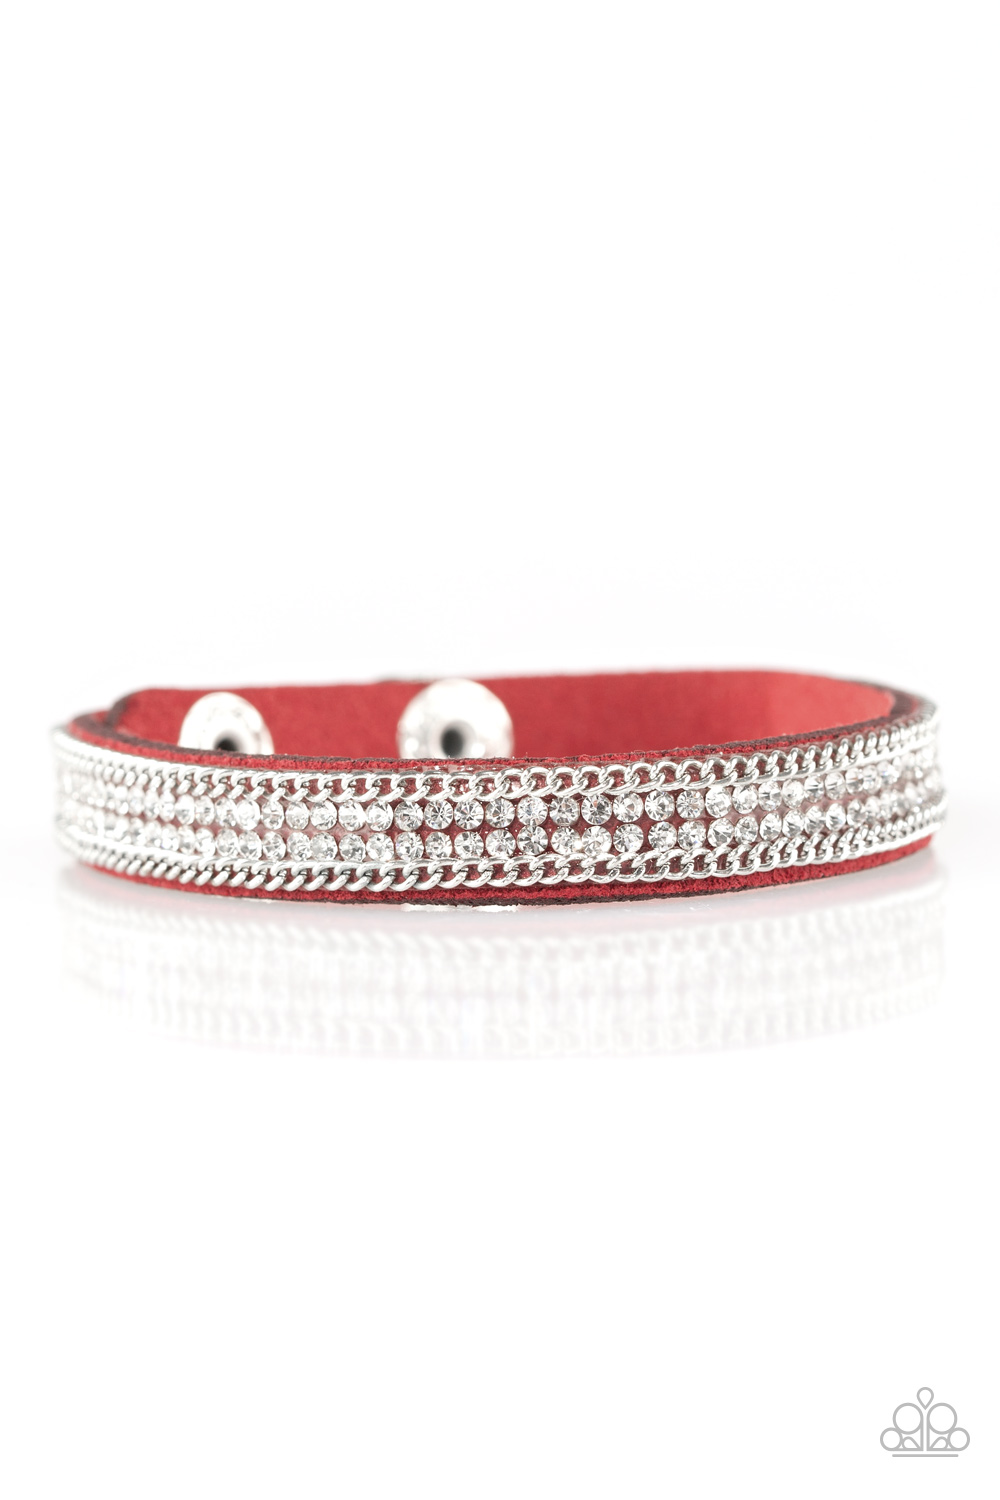 Paparazzi Accessories:  Babe Bling - Red (477)